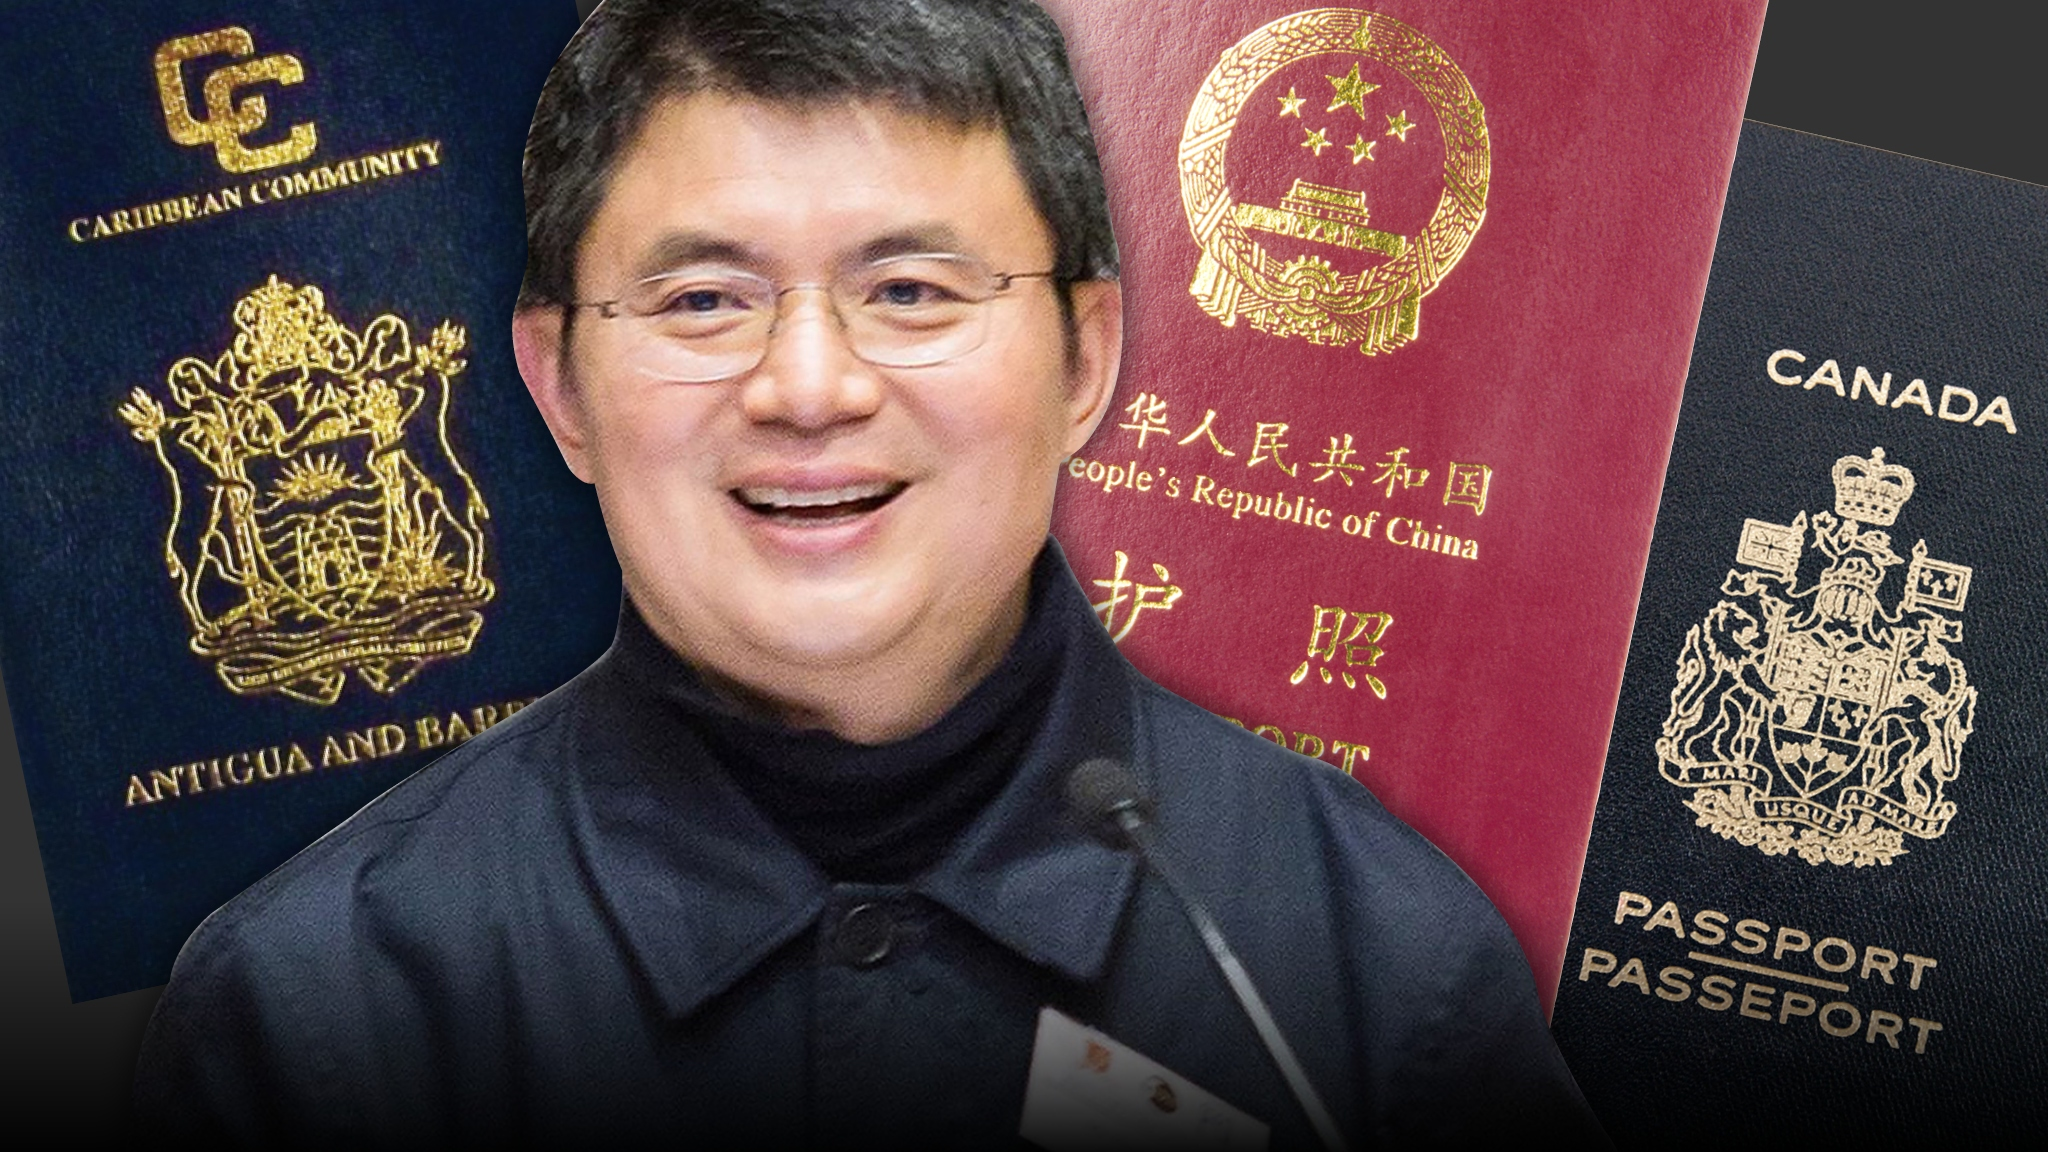 Foreign passports offer little protection for China's elite